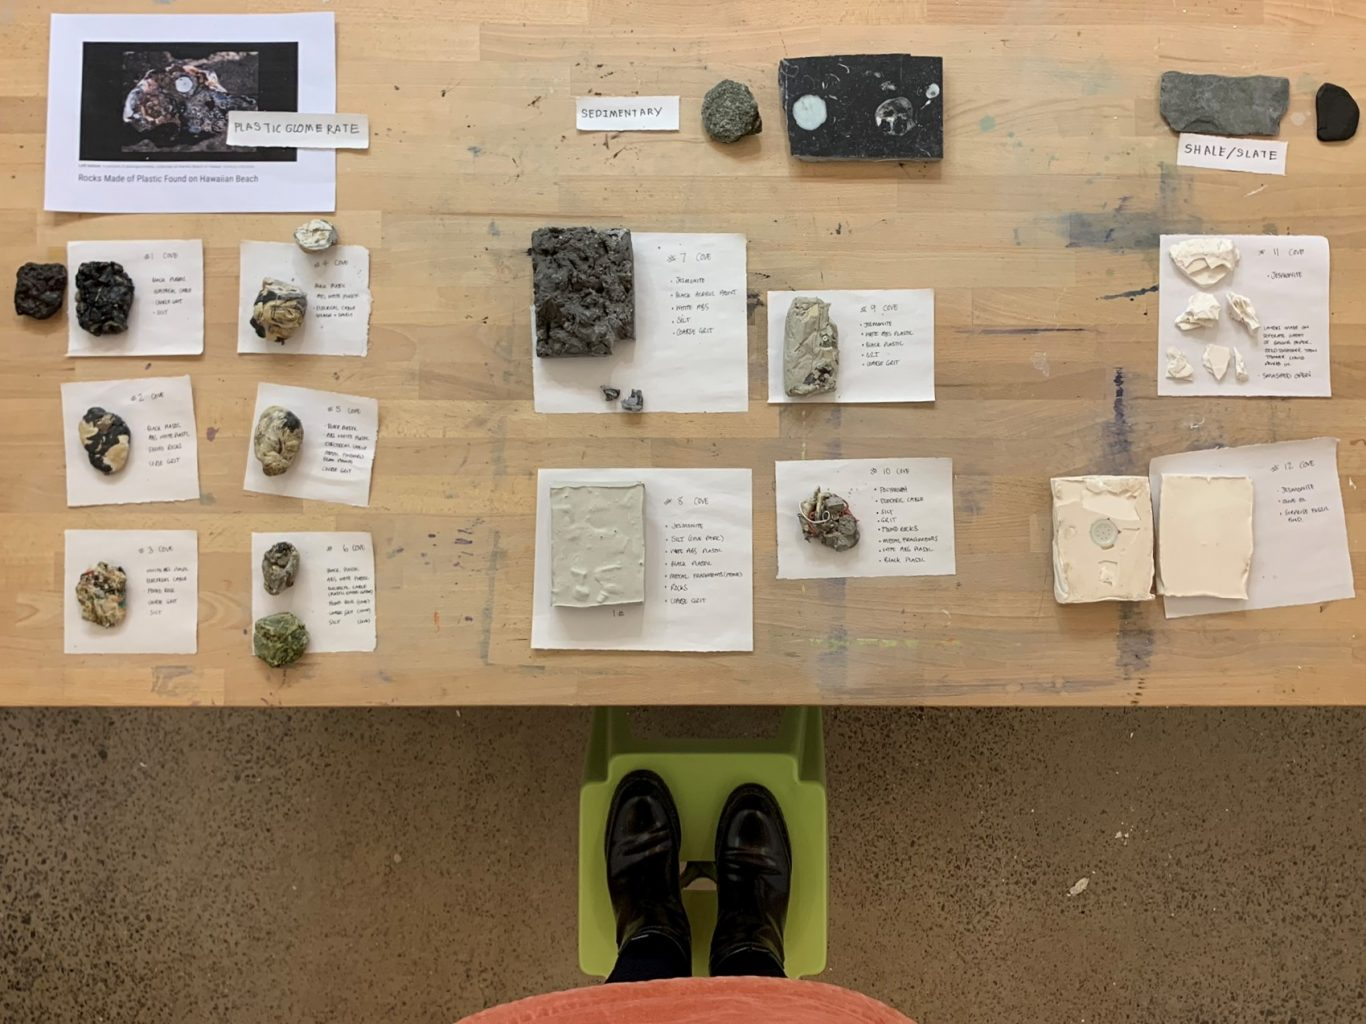 Wooden table top with samples of man made tock laid out on pieces of white paper which have notes about their creation